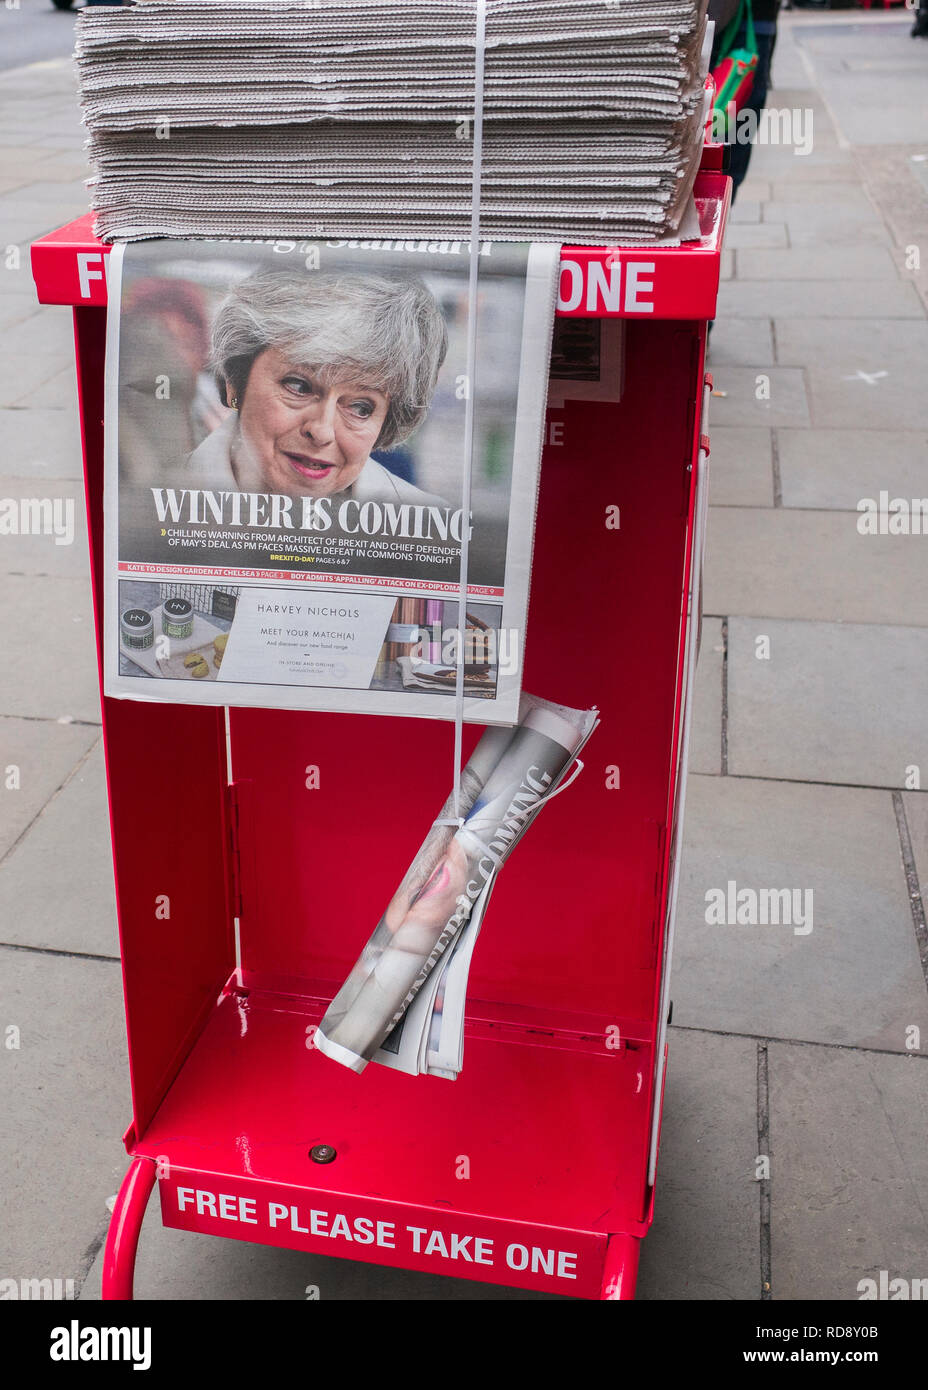 Theresa May,Evening standard newspaper headline, 'winters coming' Evening standard free newspaper dispensed on streets of London - Stock Image